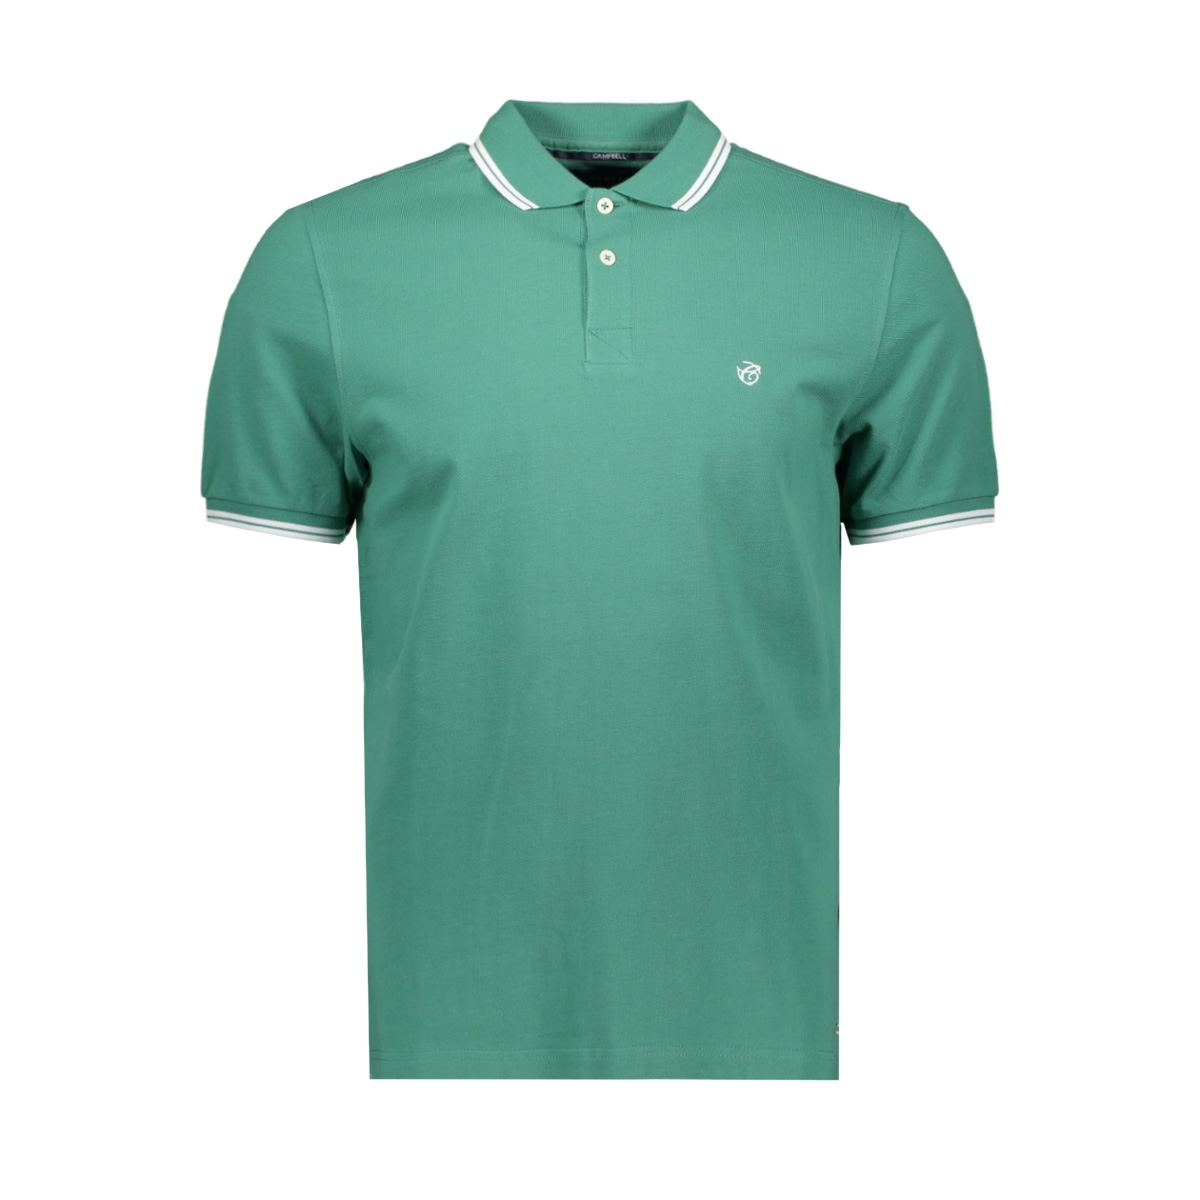 classic polo km 052936 campbell polo 007 flessen groen